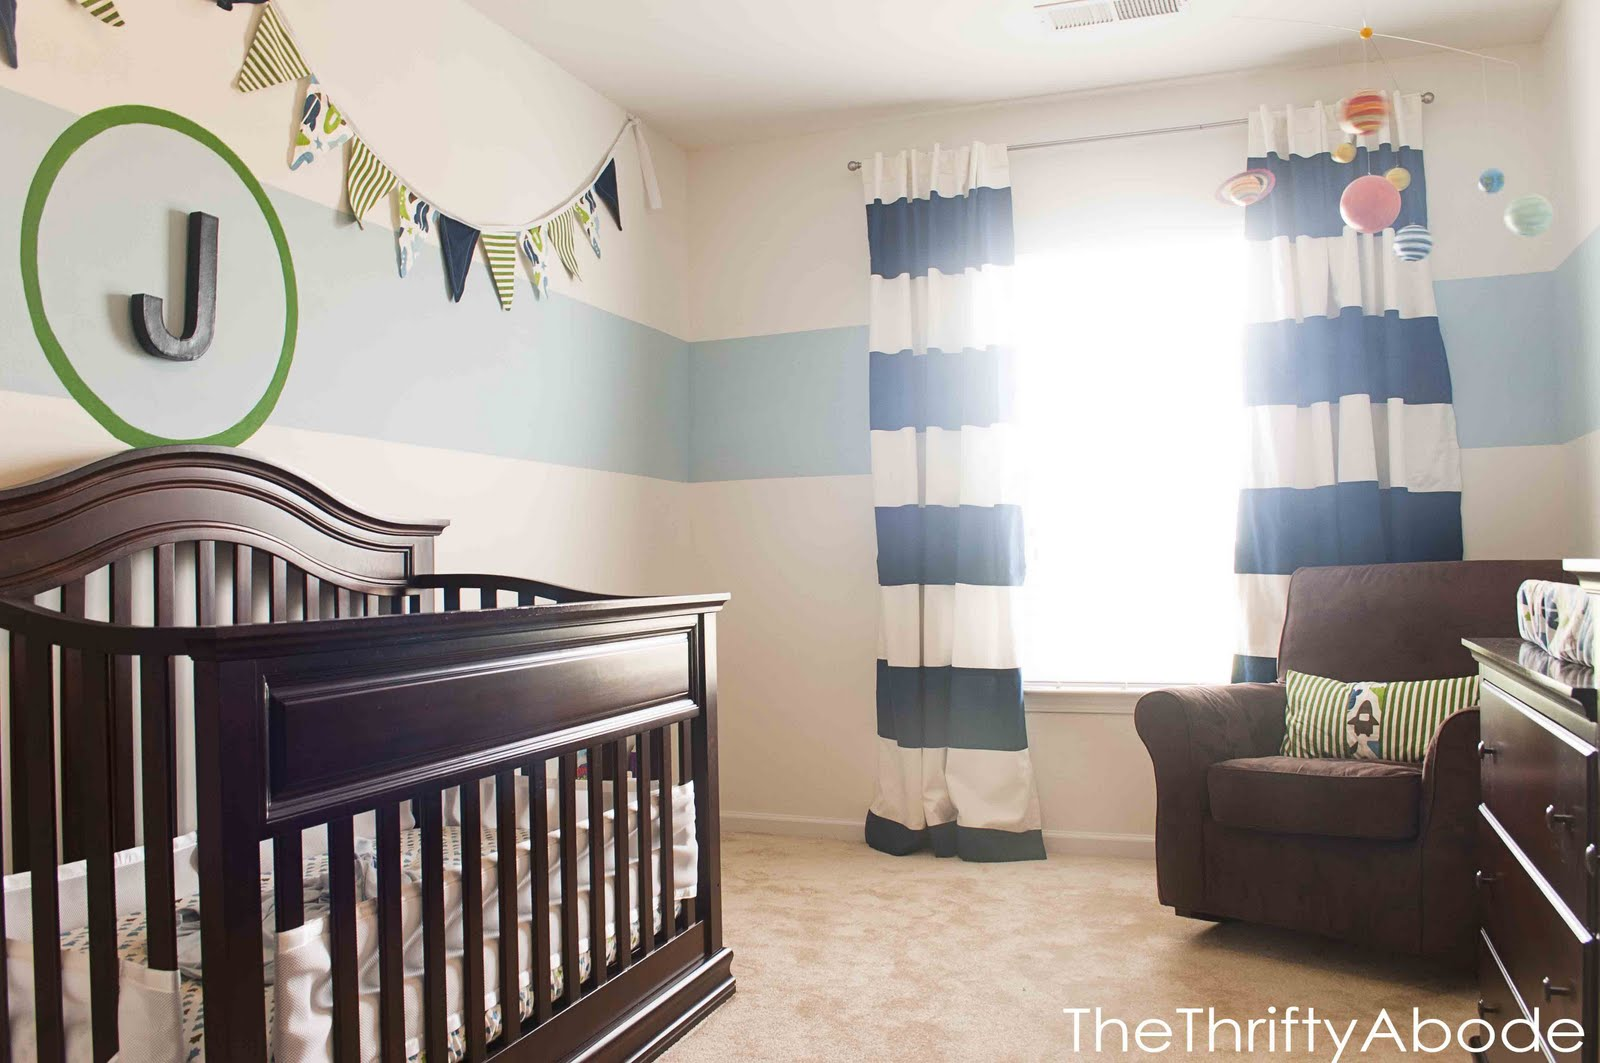 Space-y Nursery - The Thrifty Abode